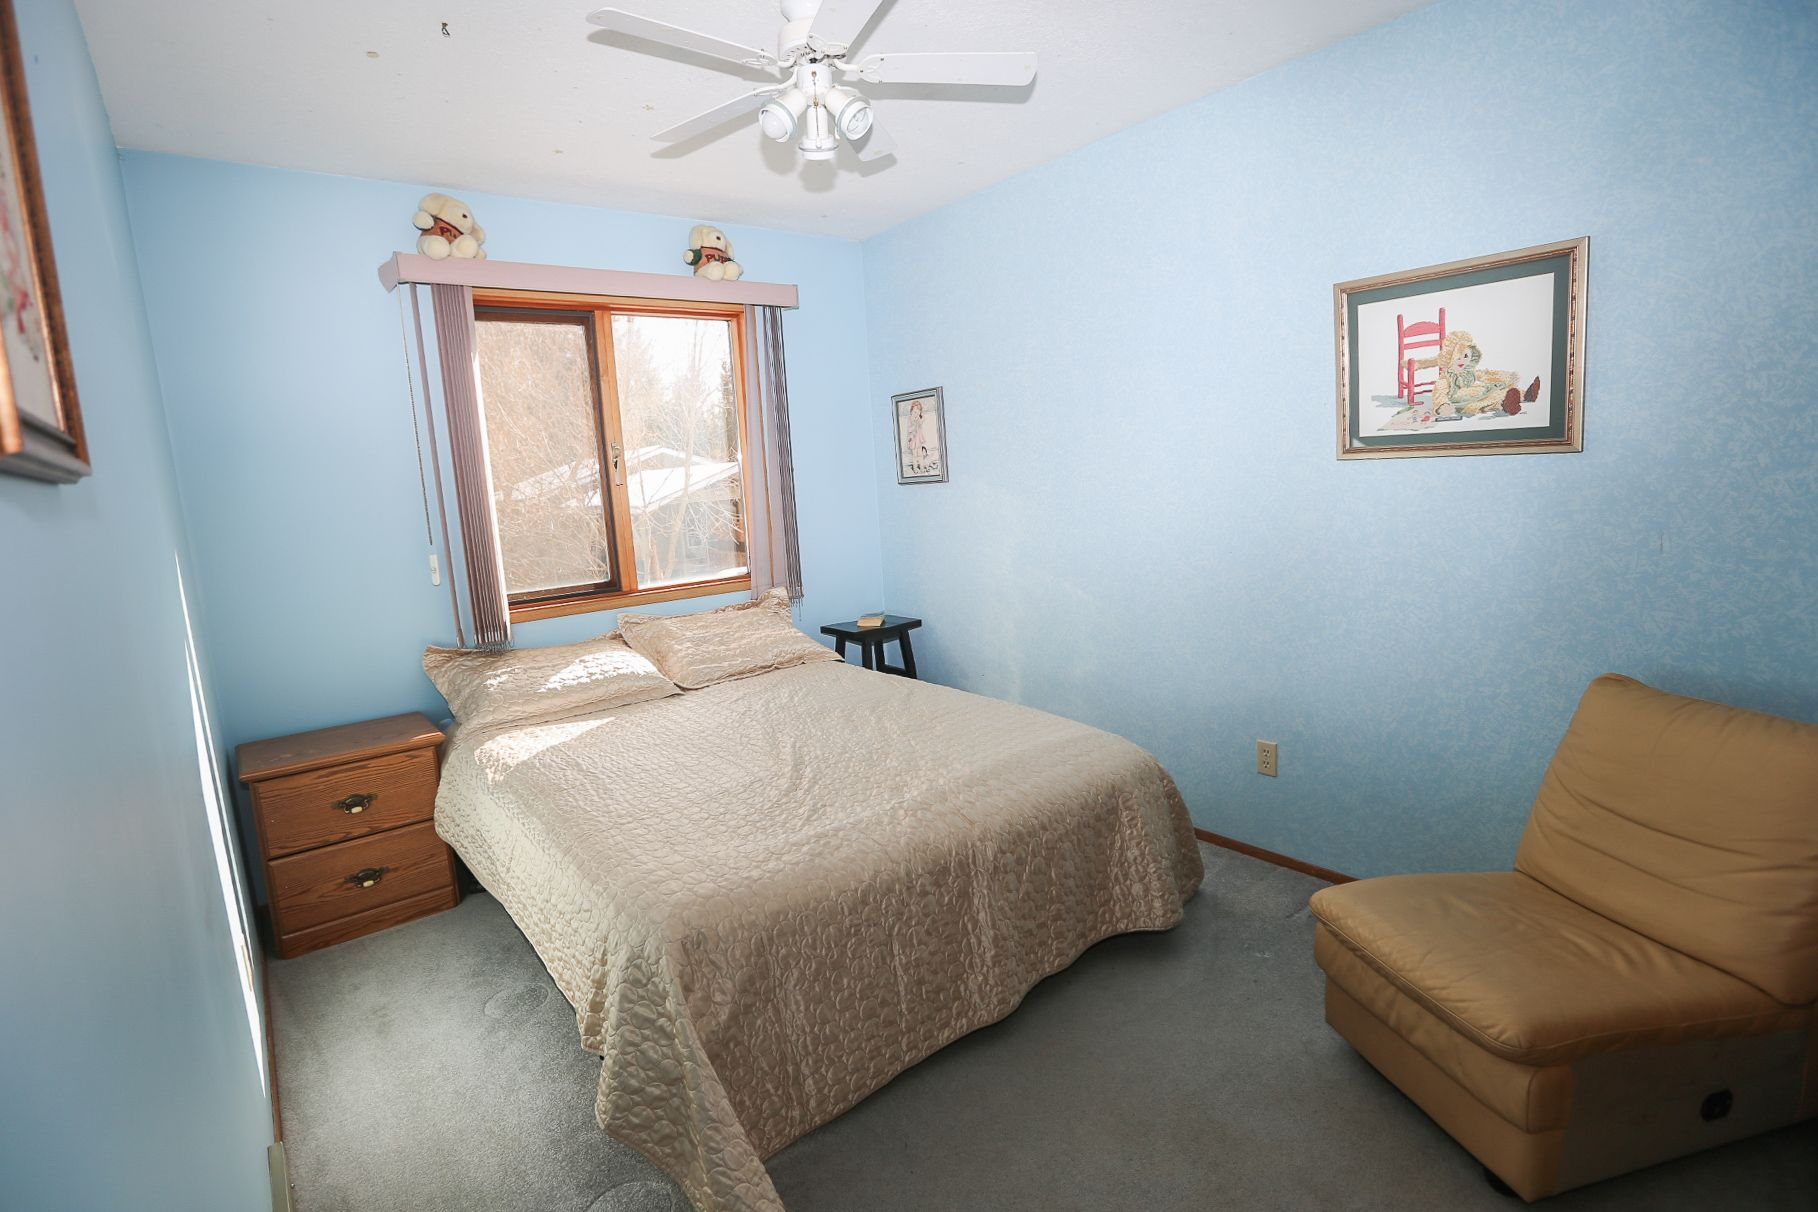 Photo 18: Photos: 434 ROBIN DRIVE: BARRIERE House for sale (NORTH EAST)  : MLS®# 160553